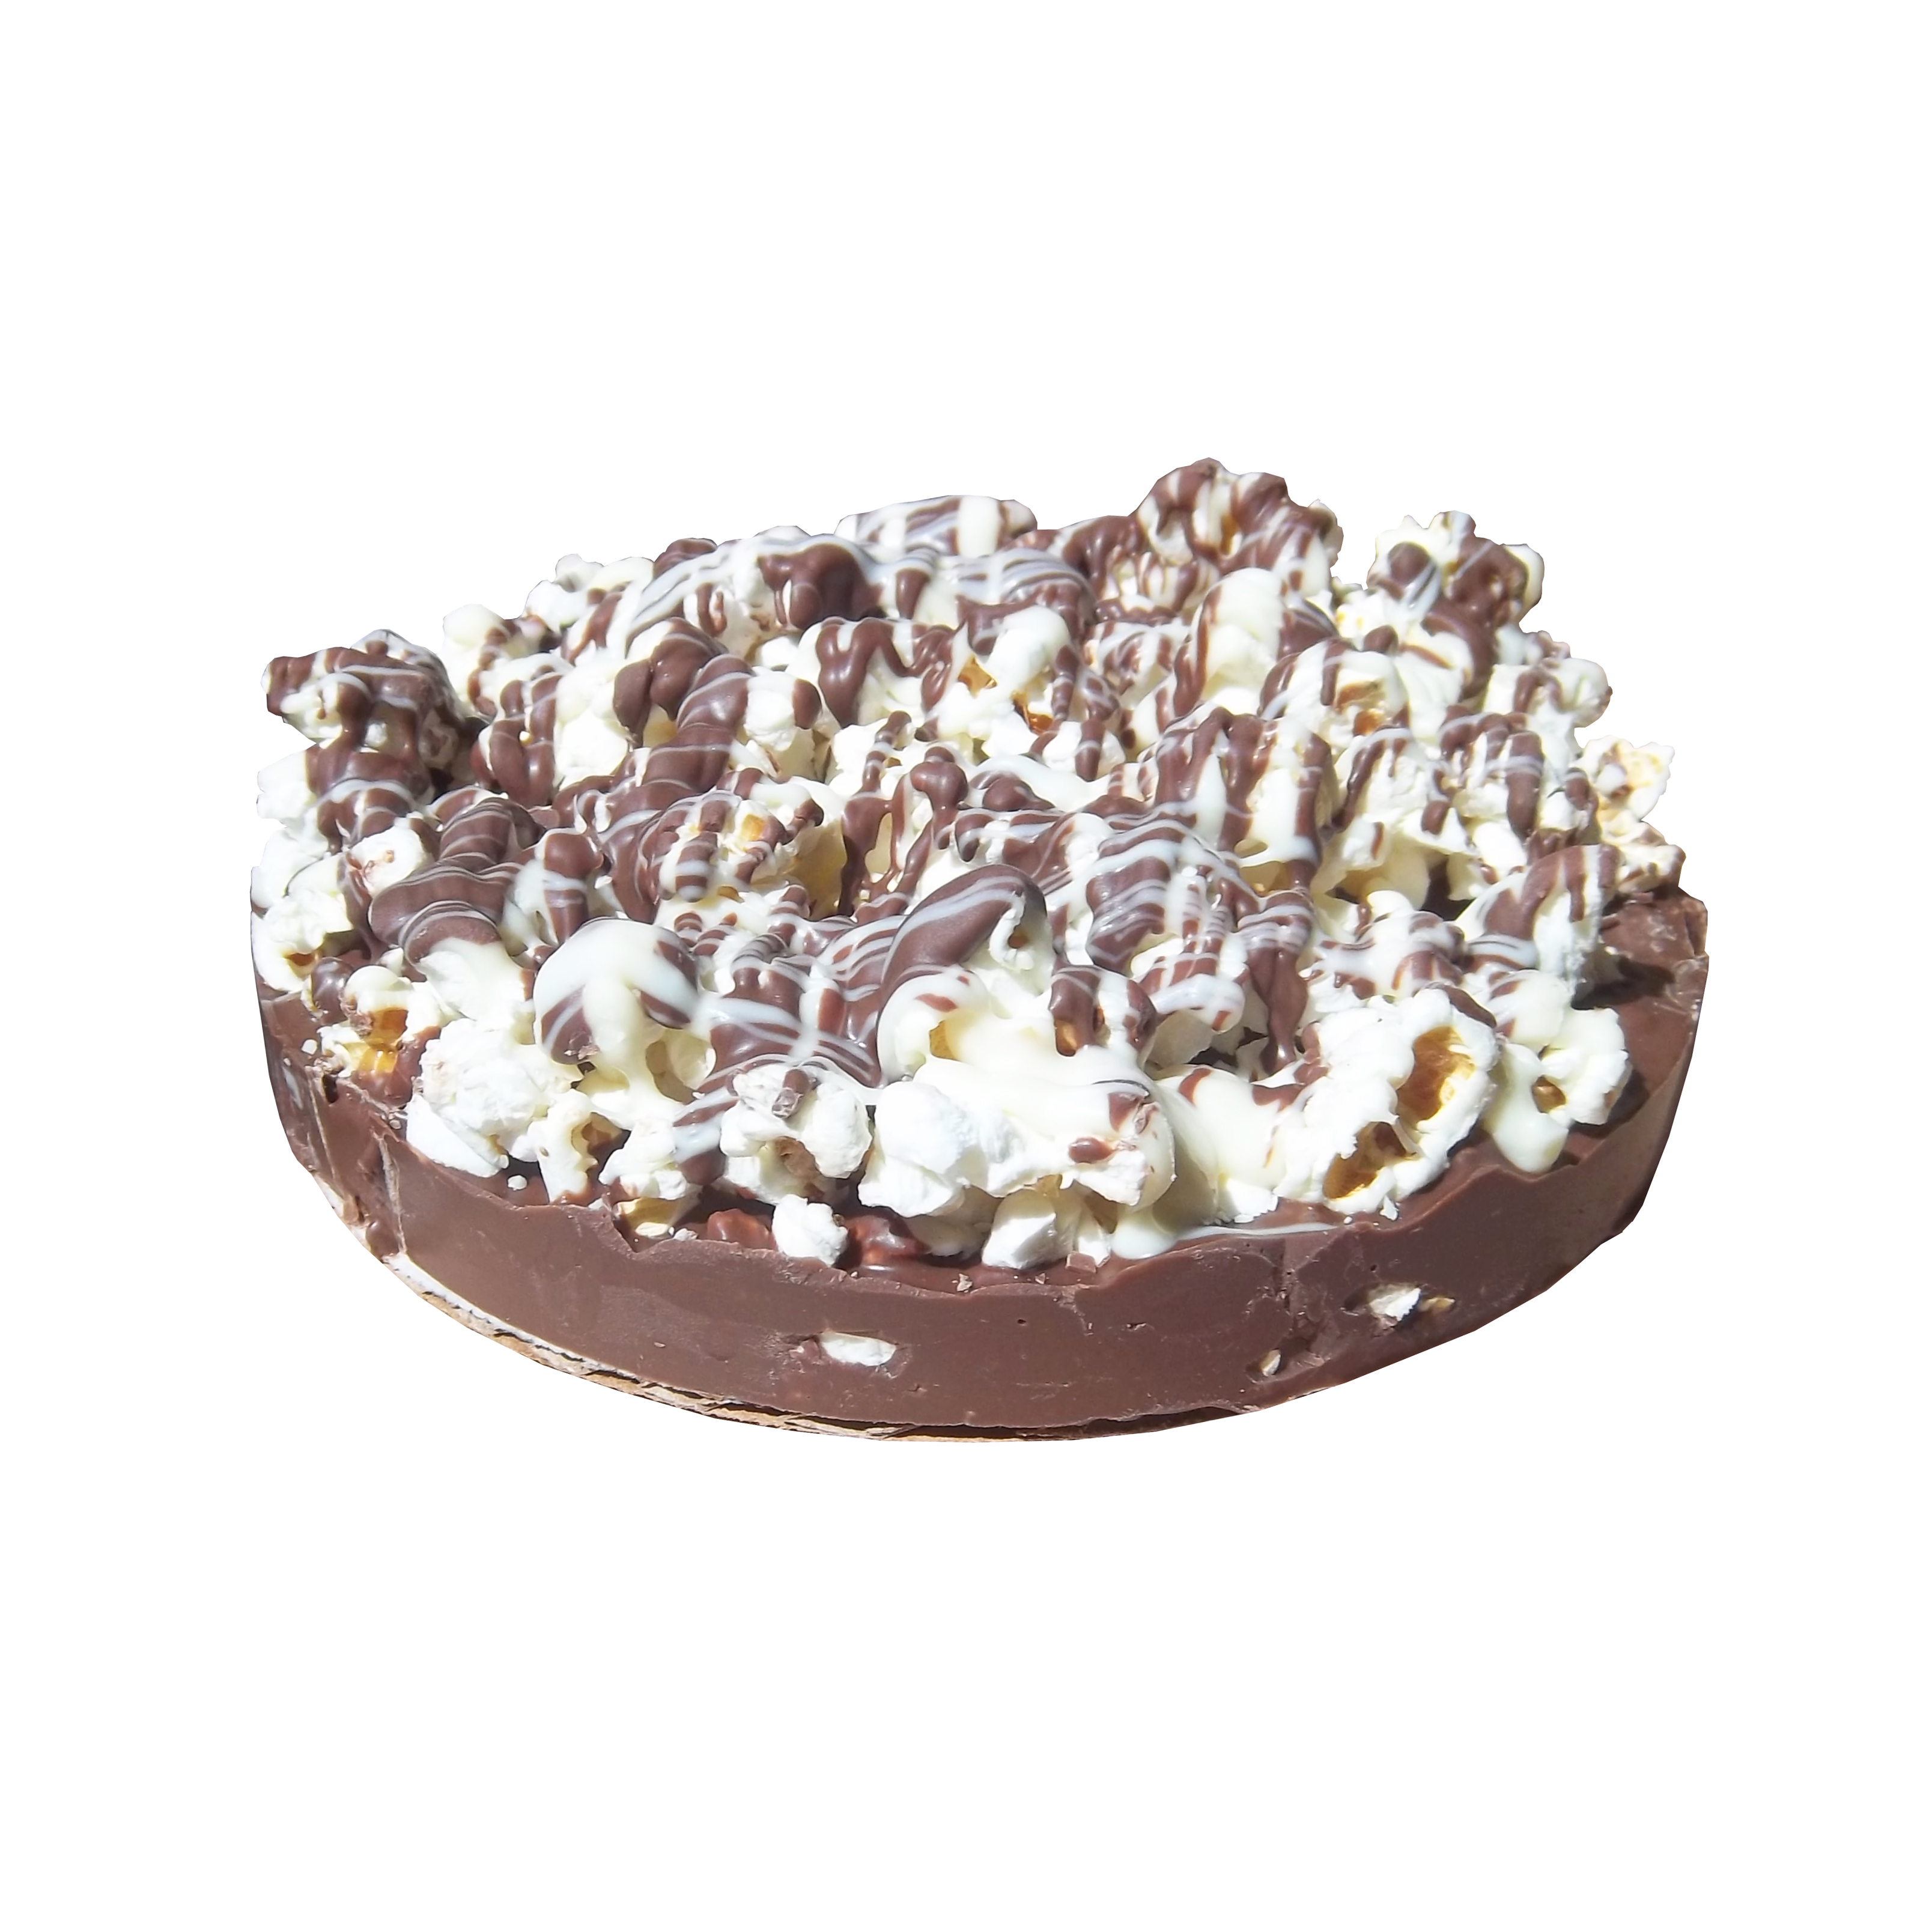 Gourmet Chocolate Pizza (Mini Gluten Free) MIGF